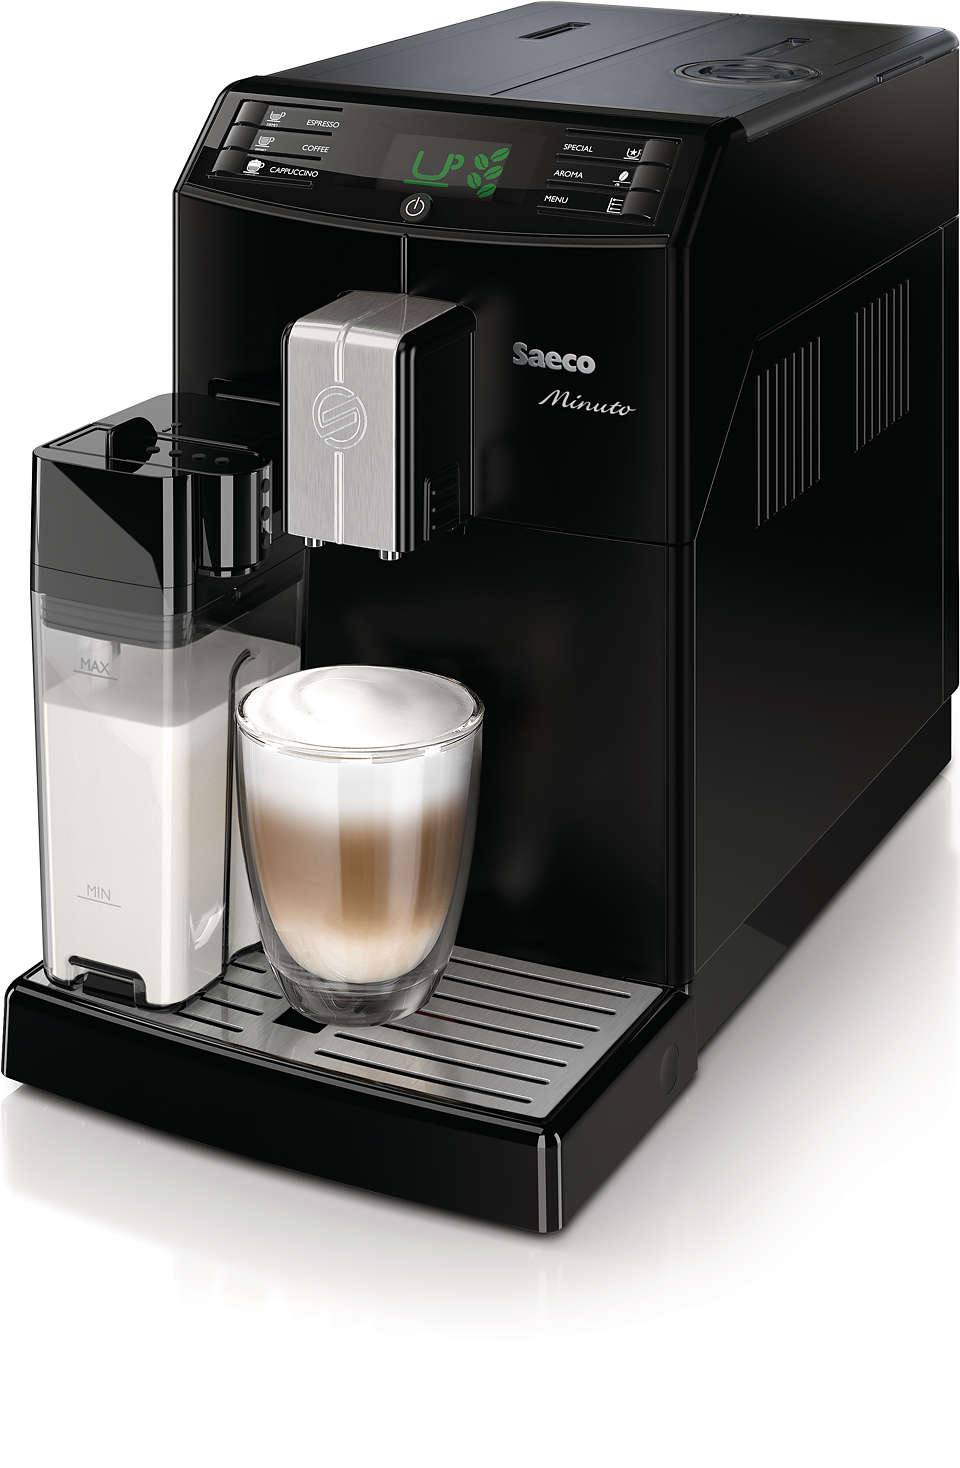 Always your favourite coffee with just one touch